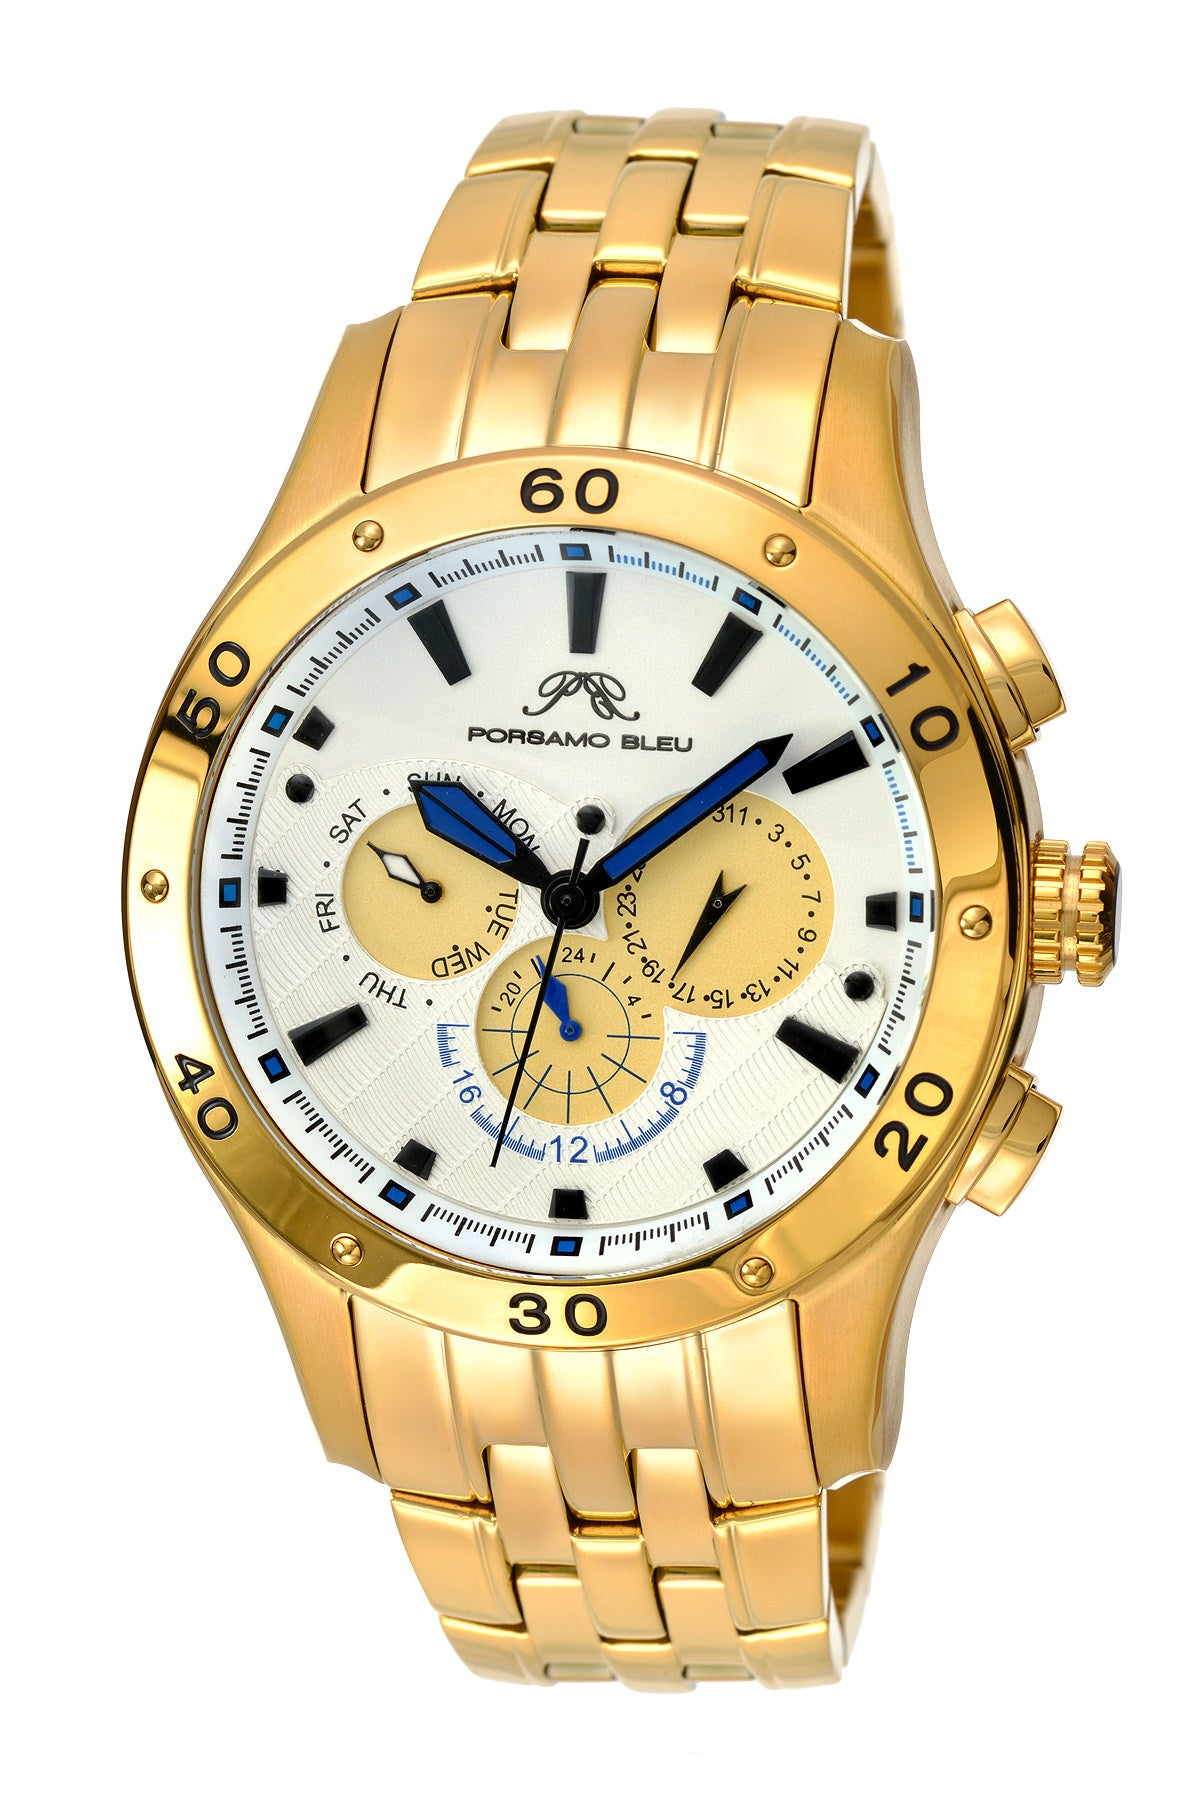 Porsamo Bleu, Andre luxury men's stainless steel watch, gold, white 221BANS